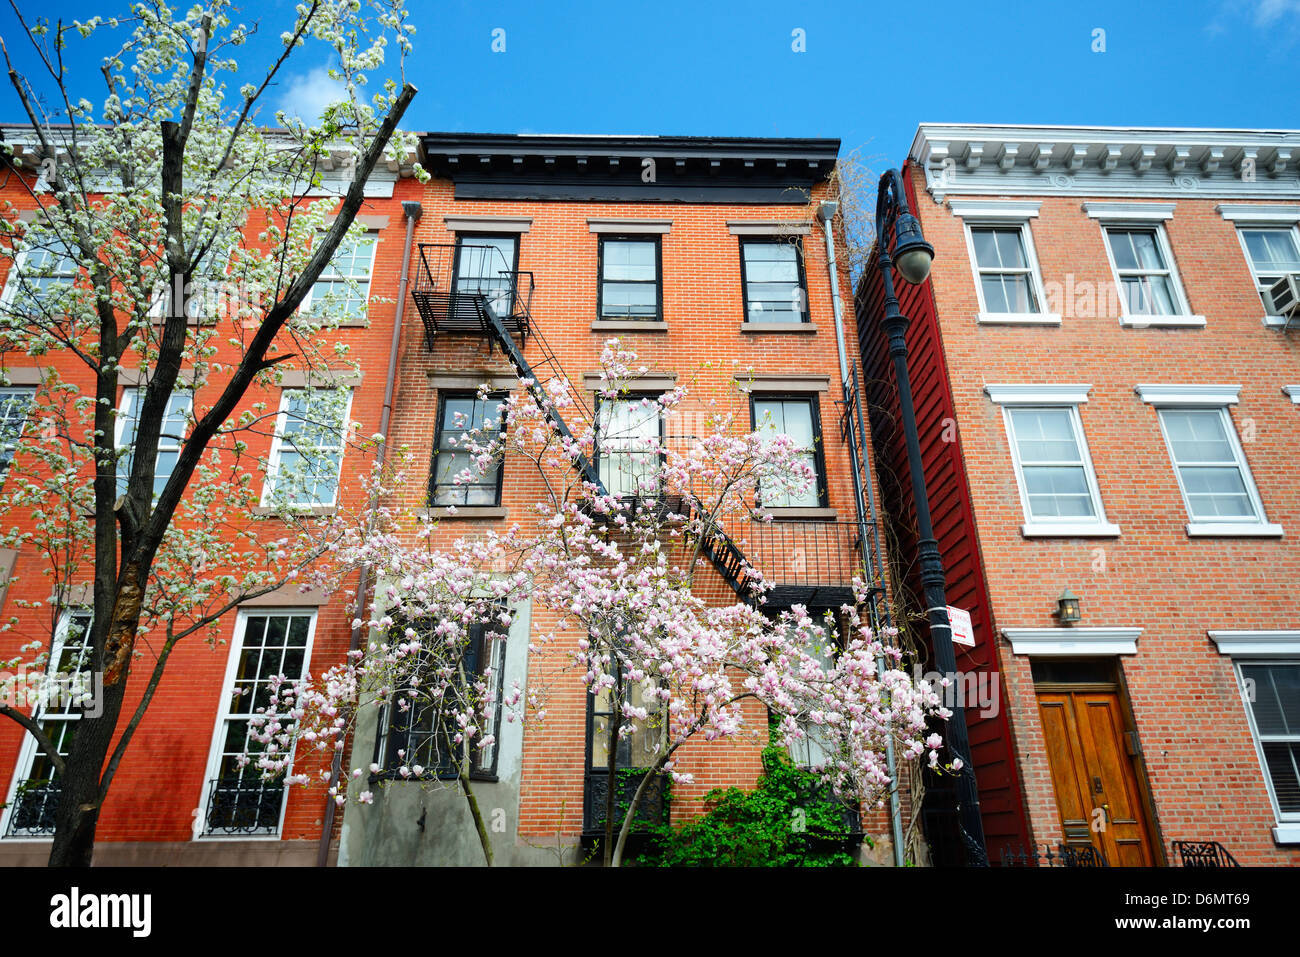 West Village New York City apartments in the springtime - Stock Image